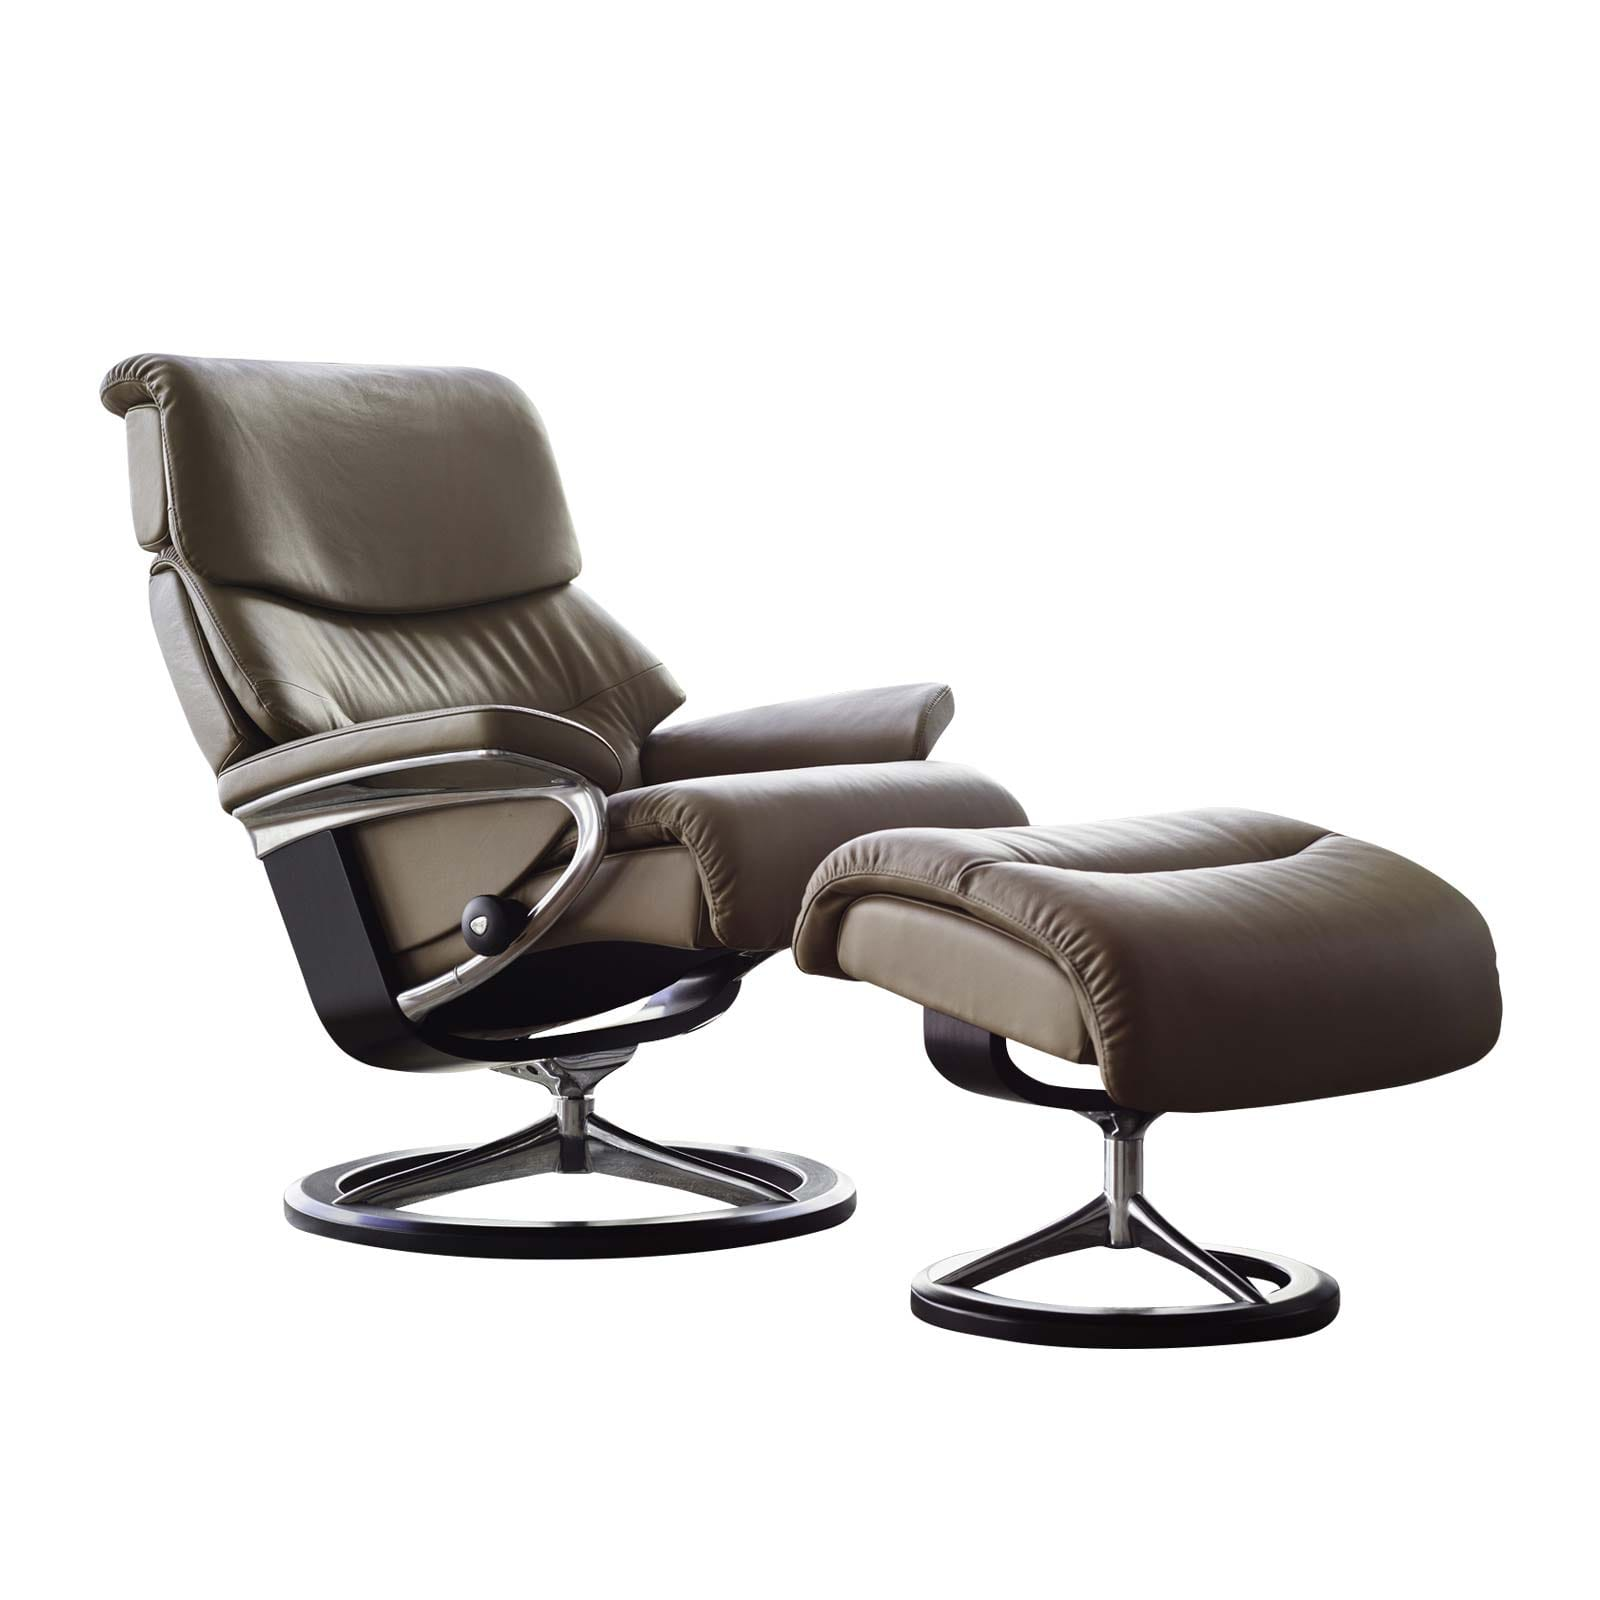 Stressless Sessel Bliss Stressless Sessel Grun